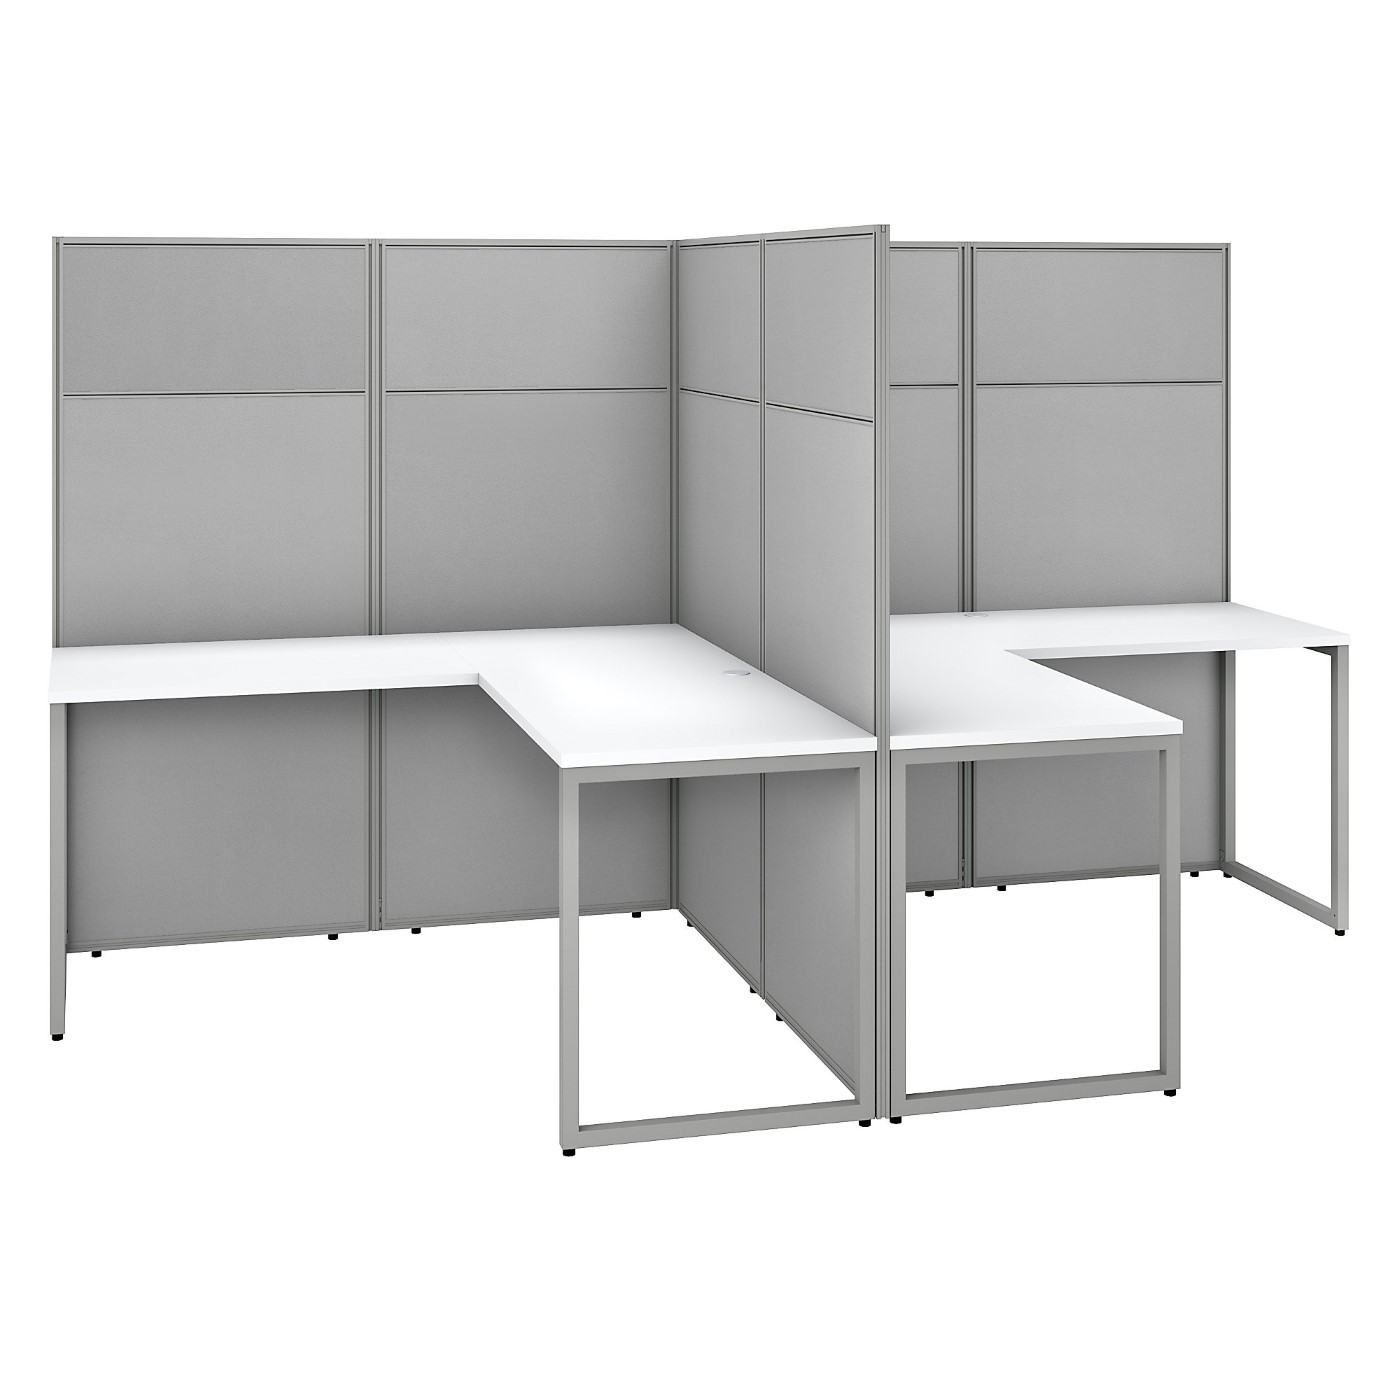 BUSH BUSINESS FURNITURE EASY OFFICE 60W 2 PERSON L SHAPED CUBICLE DESK WORKSTATION WITH 66H PANELS. FREE SHIPPING